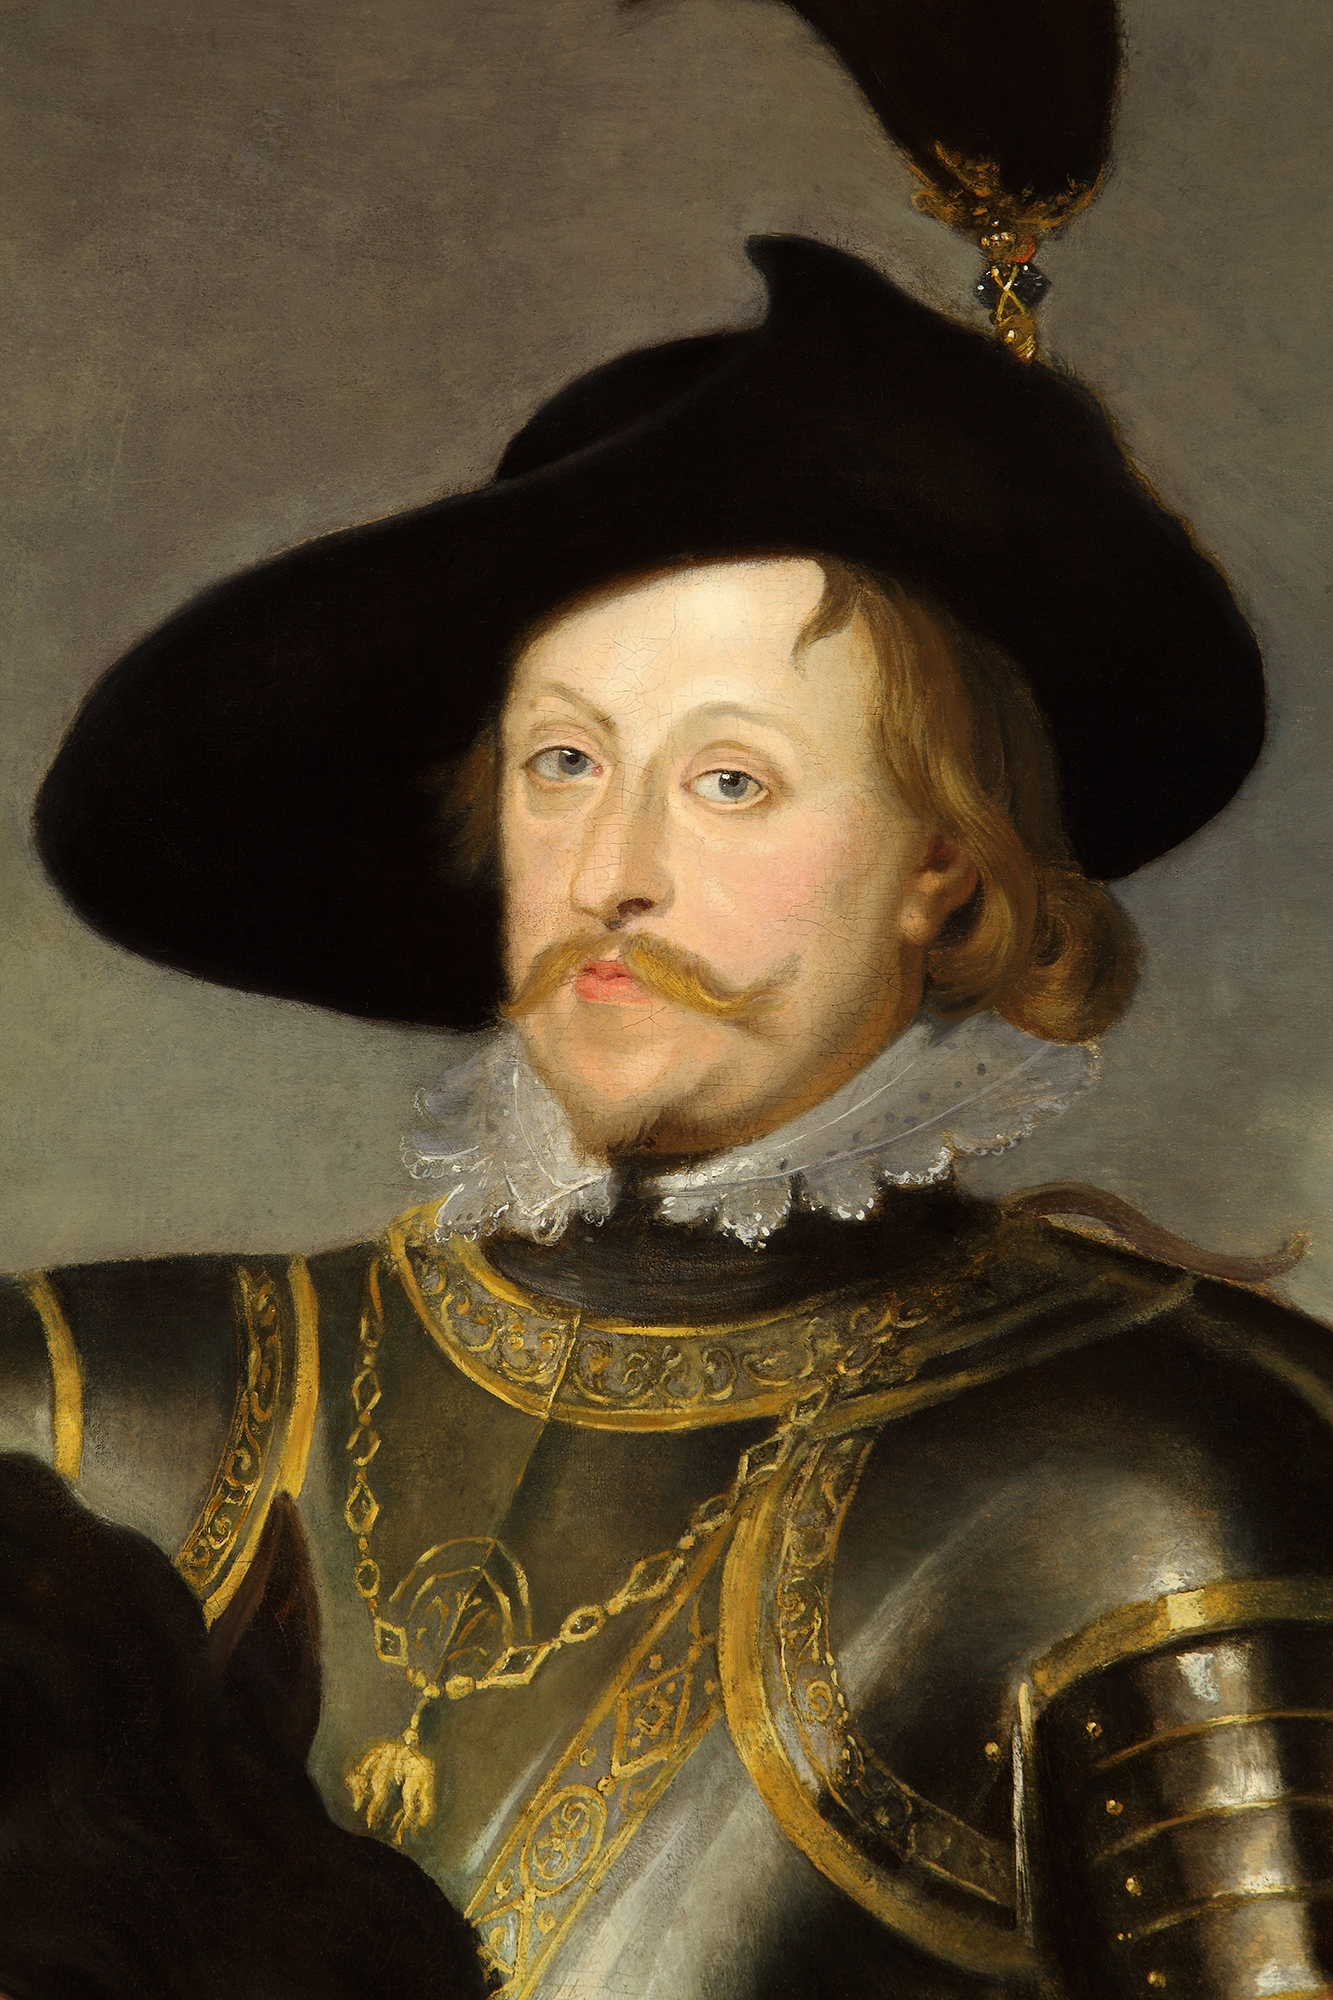 Portrait of Władysław IV Vasa (1595-1648), King of Poland and Grand Duke of Lithuania (1632-1648), Tsar and Grand Prince of All Russia (1610-1613), 1625 | Portraits of Kings